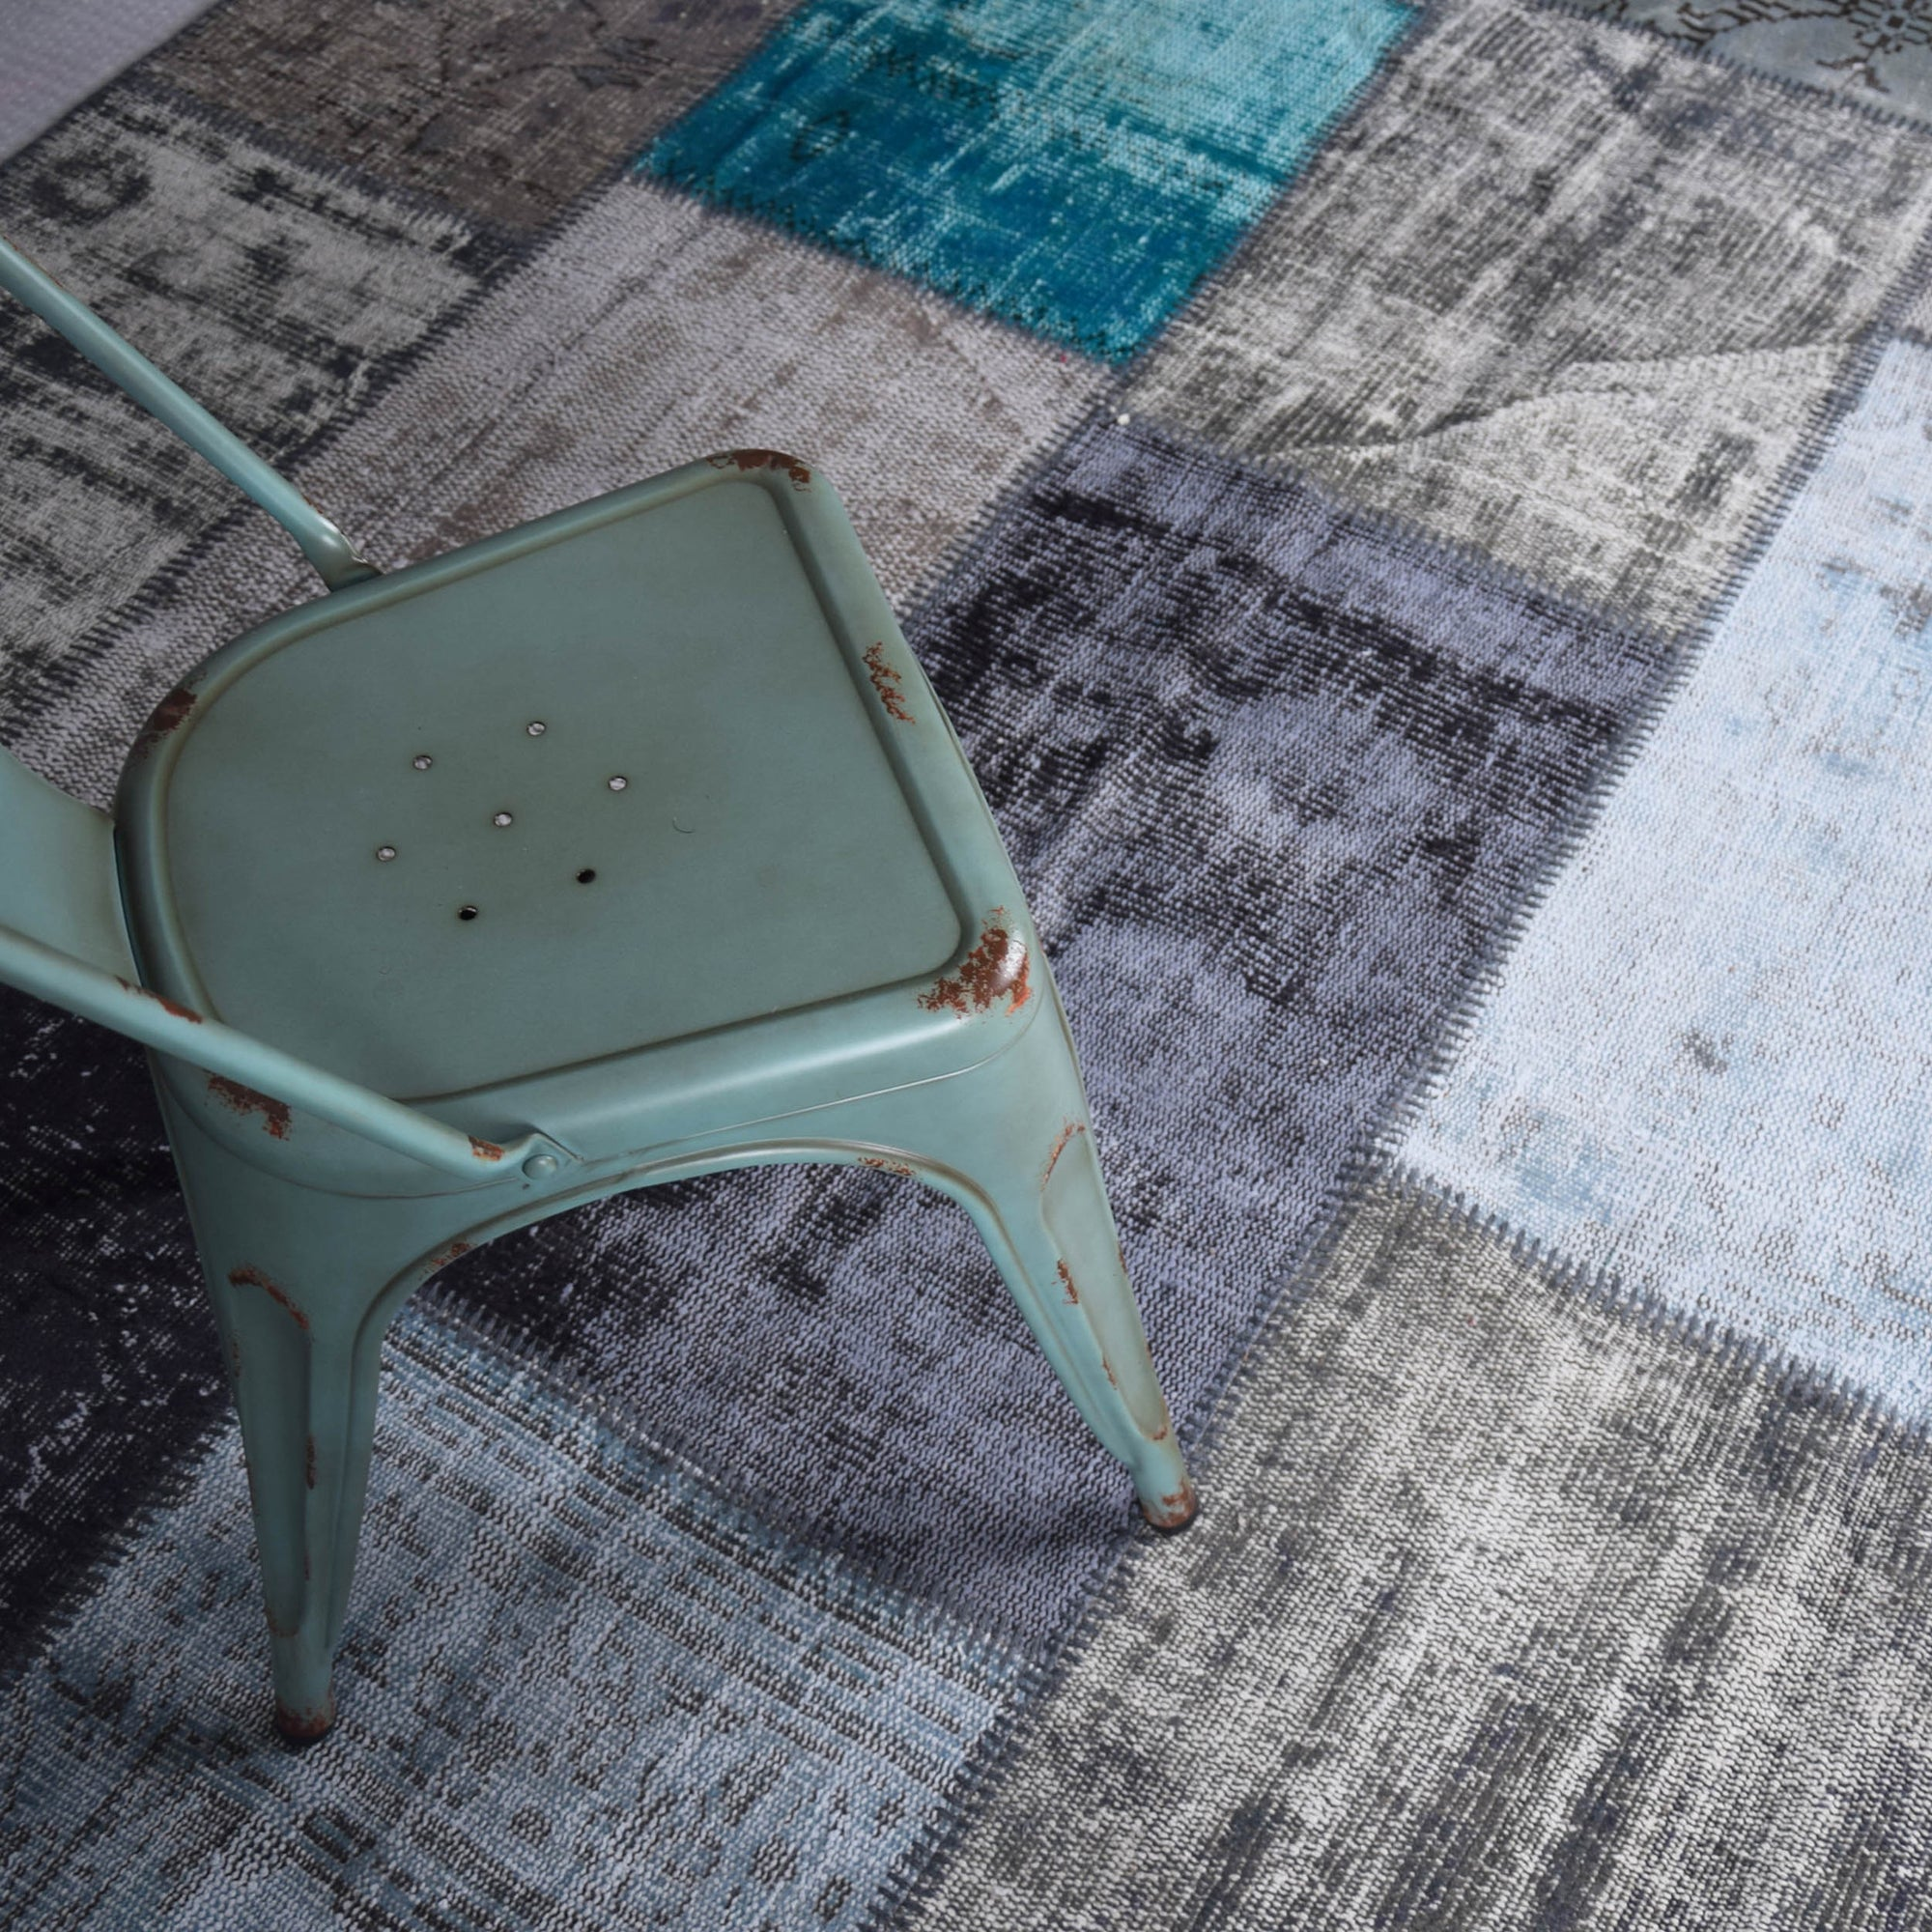 Pre Order 15 Days Delivery X Bursa Handmade Over Dyed Rug 400x250 Cm Pw032